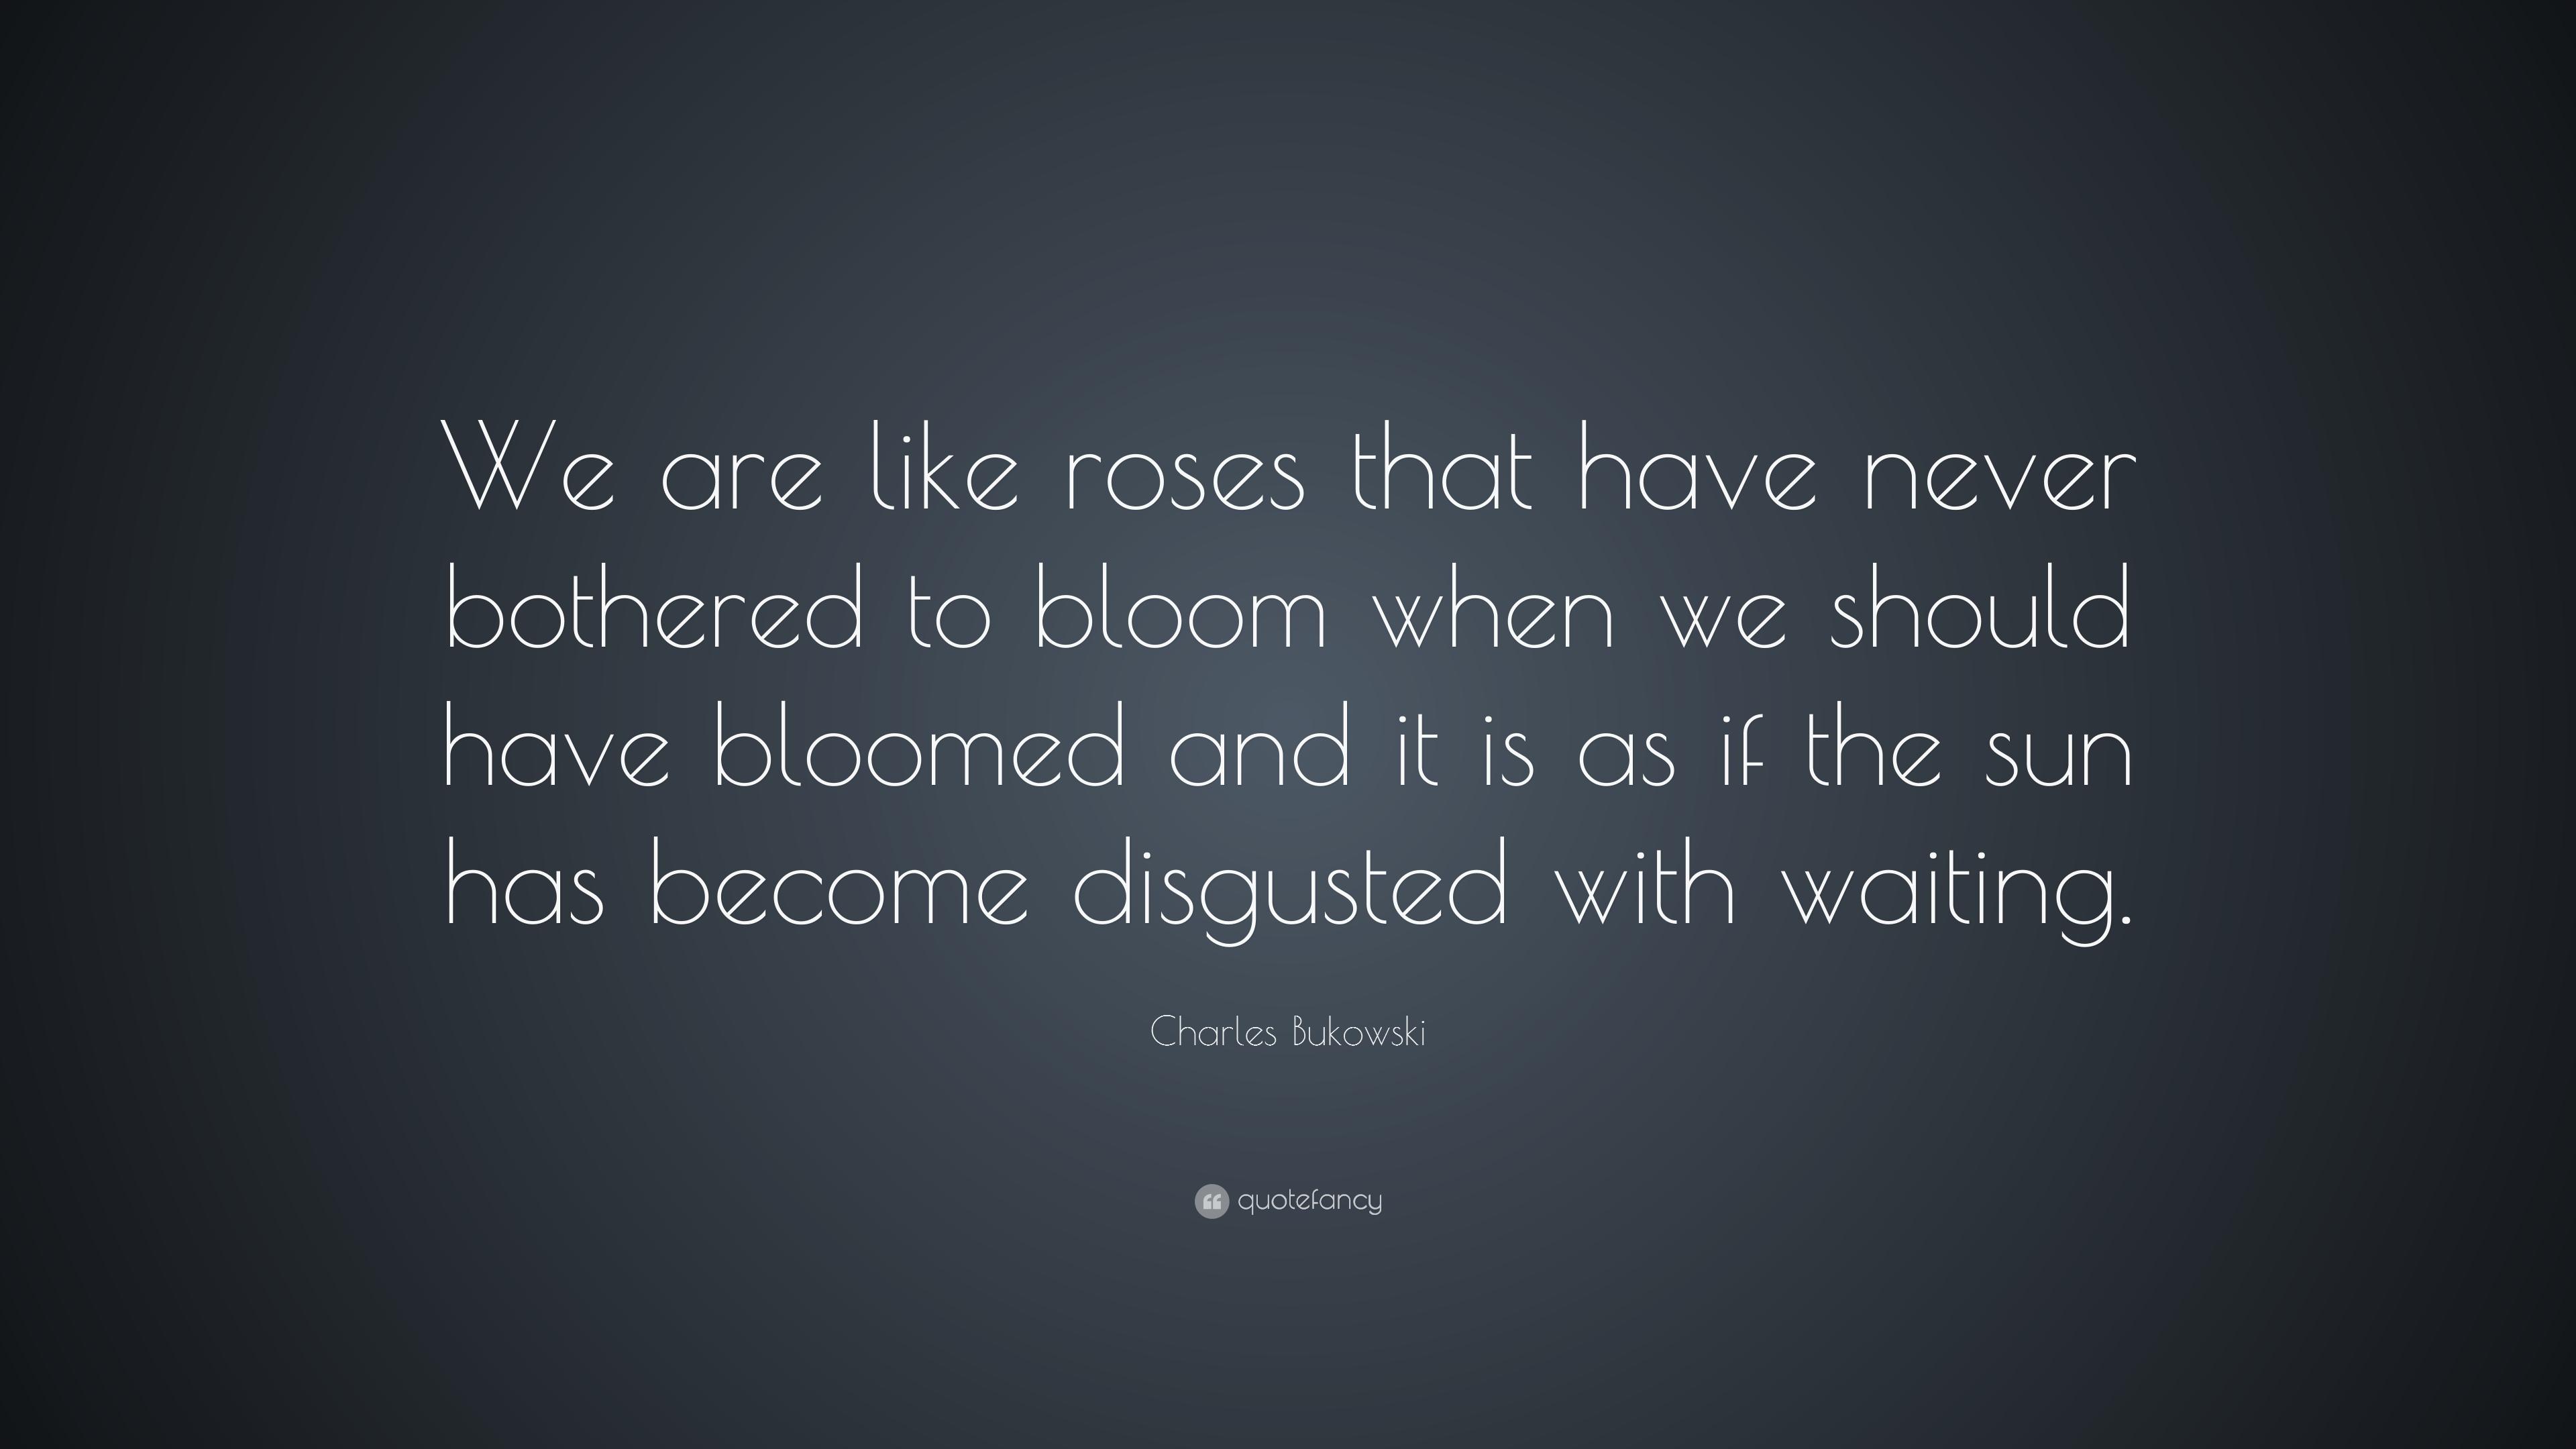 Charles Bukowski We Are Like Roses That Have Never Bothered To Bloom W...